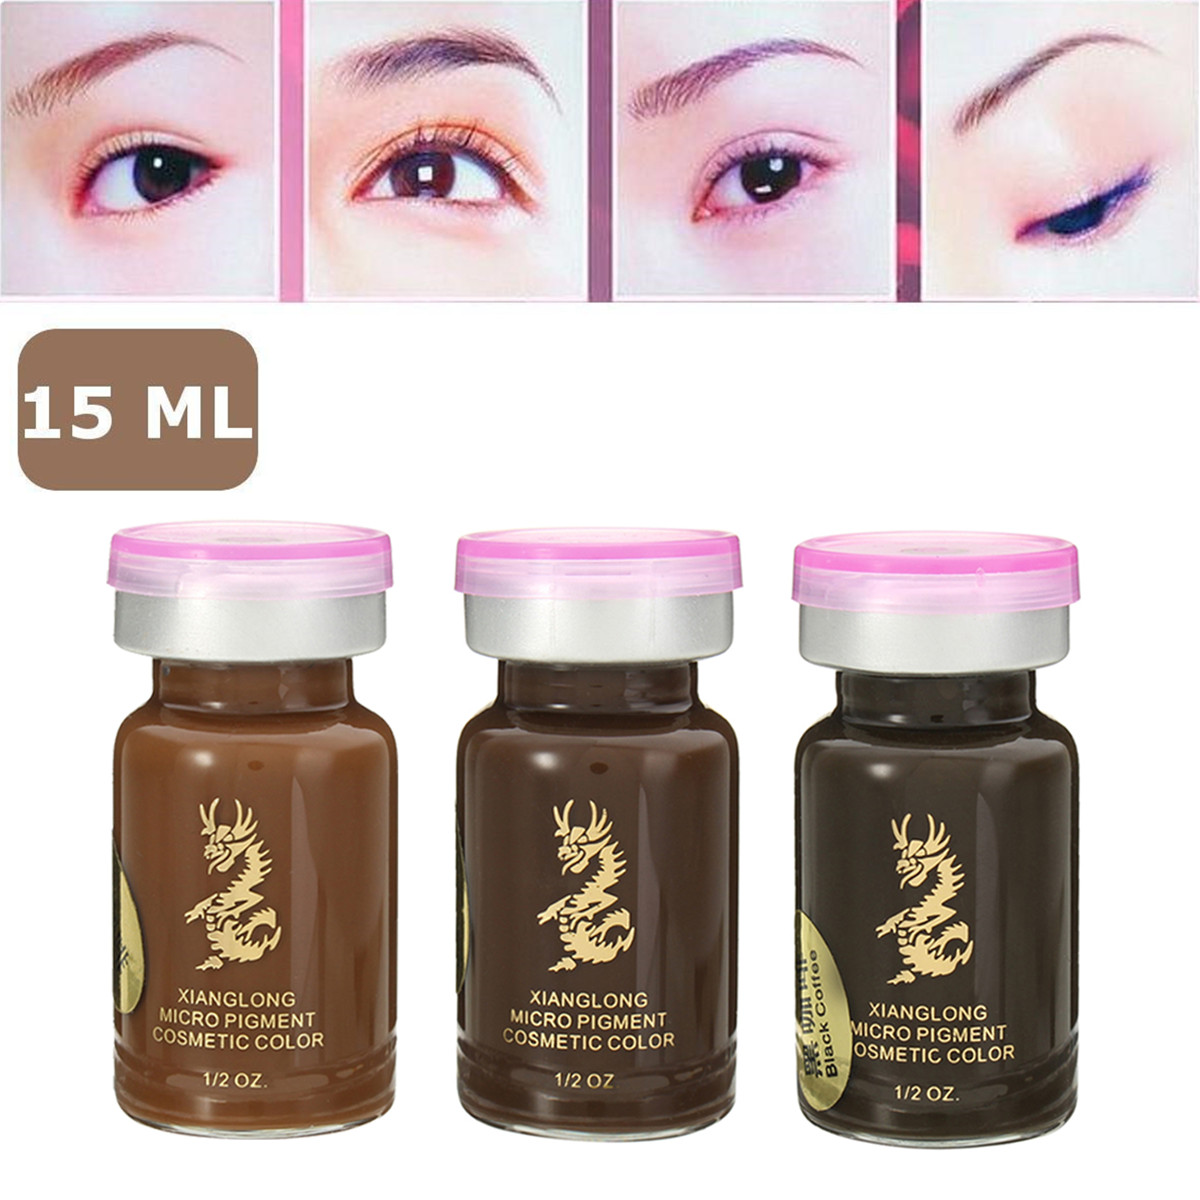 Semi-Permanent Eyebrow Tattoo Ink Professional Makeup Pigment 3D Micropigmentation Brows Ink Emulsions 3 Colors 15ml